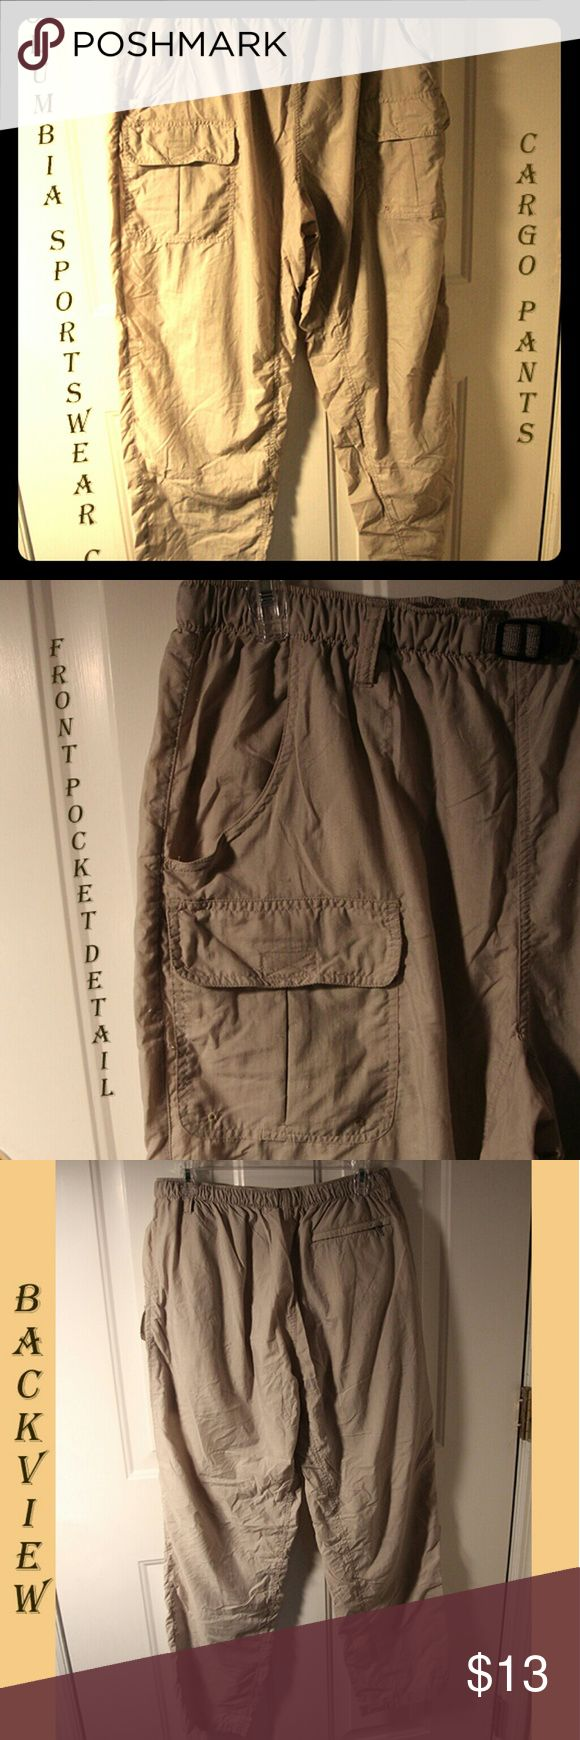 "🔅C👀l cargo pants. Gr8 pkts🔅 Columbia Sportswear Co 5pkt khaki cargo pants are in EUC. Worn only a couple times. Front side seam pkts (2) / front high thigh patch pkts (2) w/Velcro closure / zip secured right back pkt (1). Measures W-32"" / I-31"" / L-42"". From SFPF home🚭. ***Bundle 2+ items for 20% discount*** Columbia Pants"